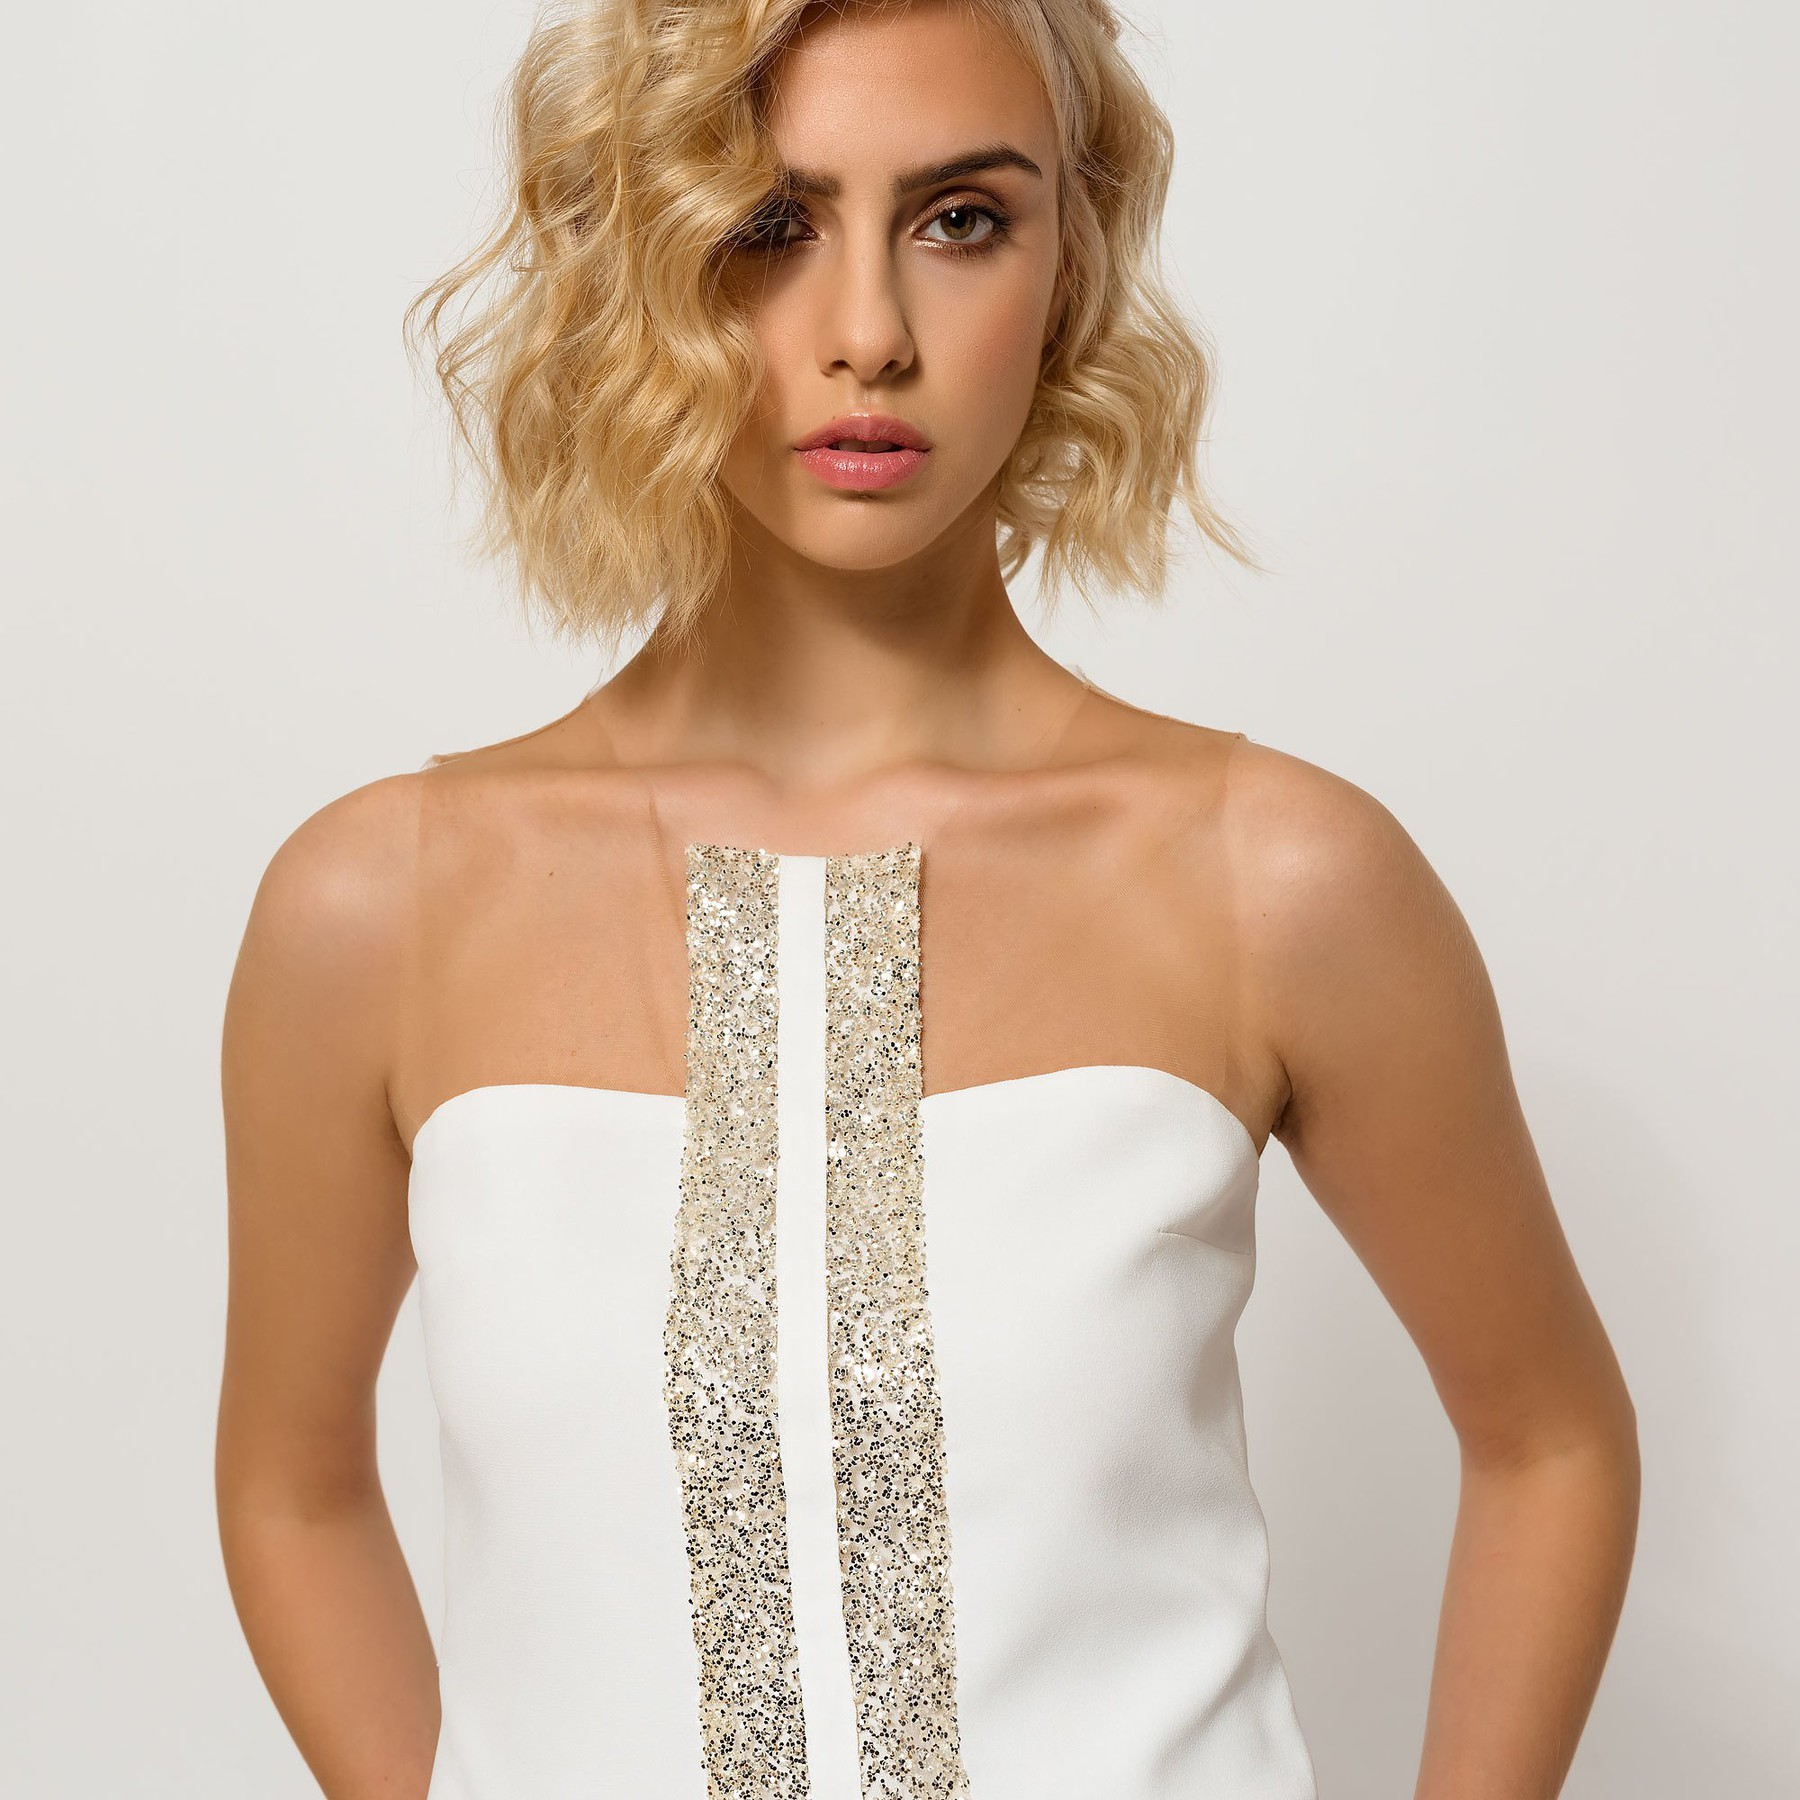 Ivory Top with Glitter Stripes